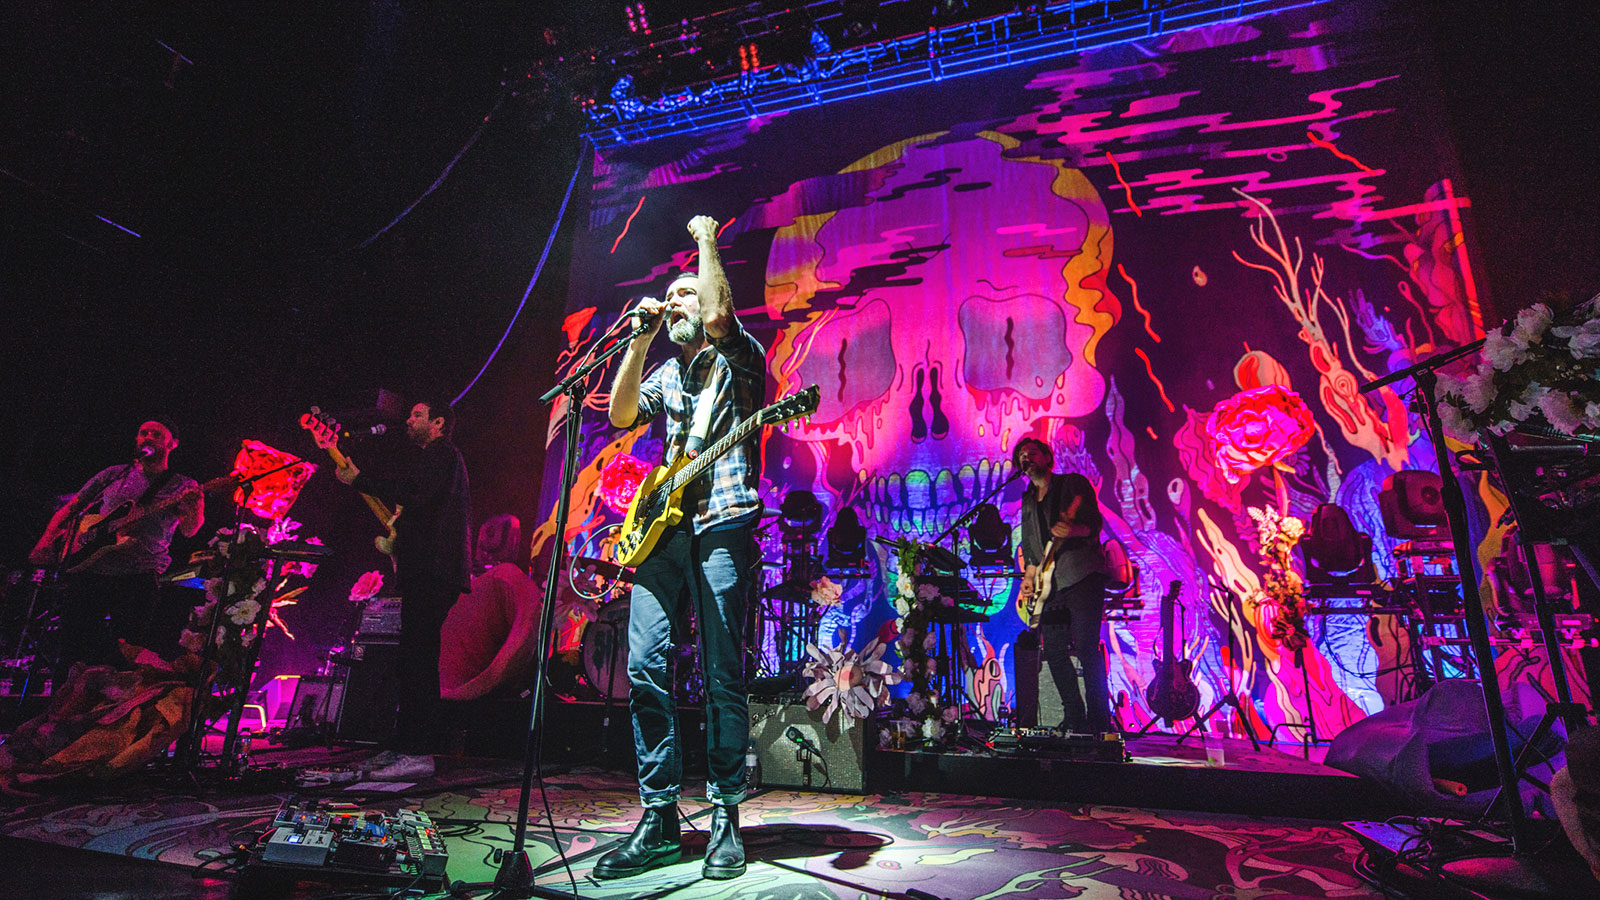 Check Out The Best Las Vegas Concerts This Summer At The Chelsea